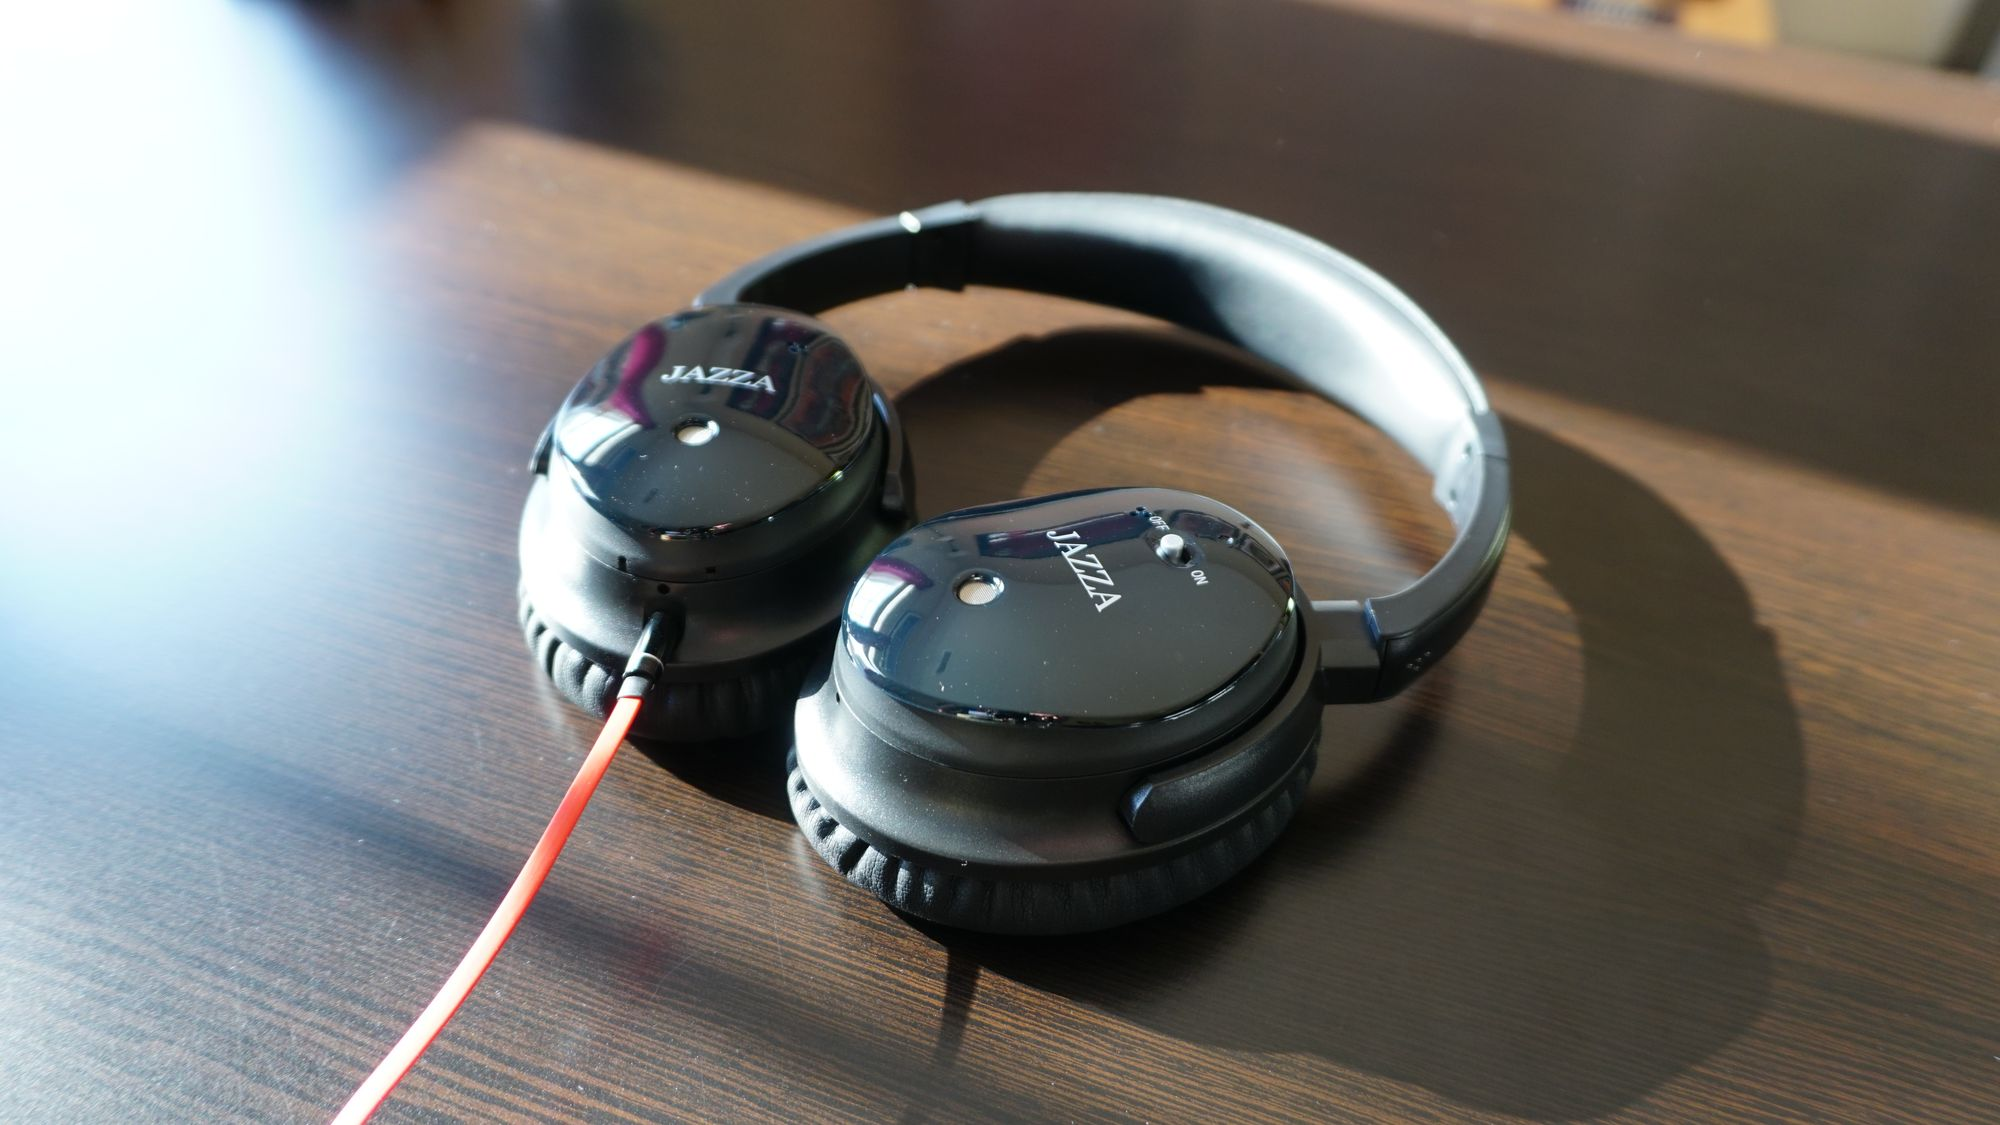 Jazza B2 Active Noise Cancelling Headphone Review